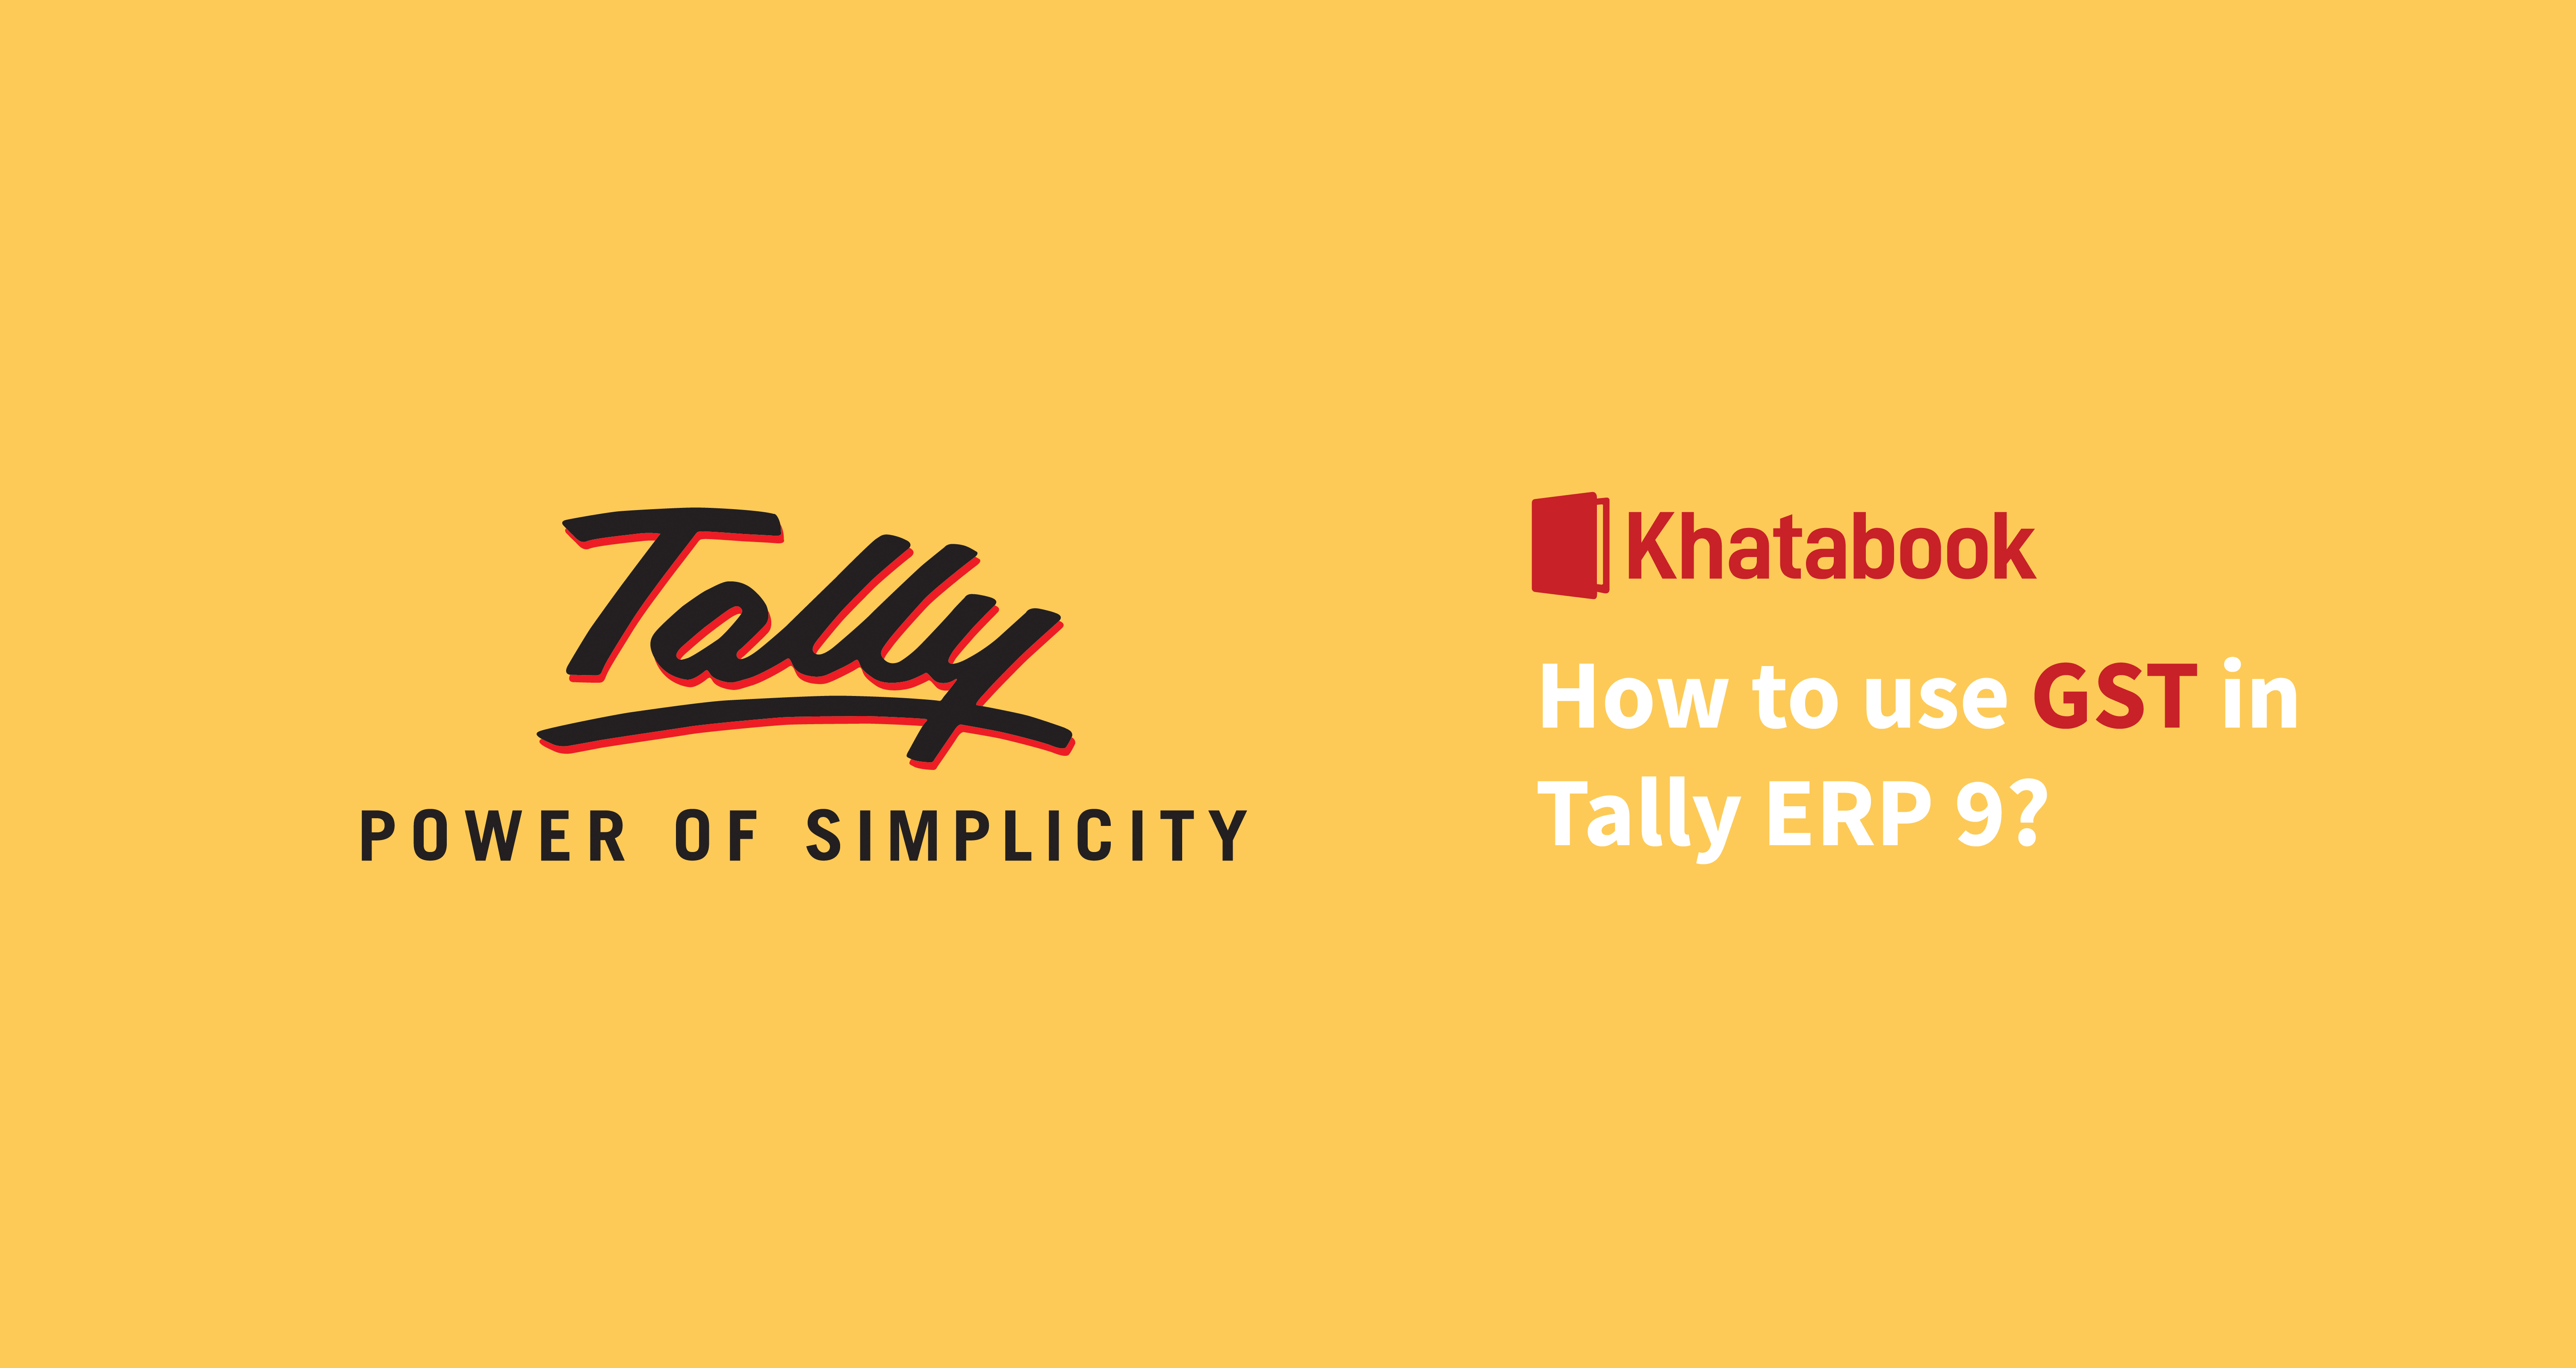 How to use GST in Tally ERP 9?